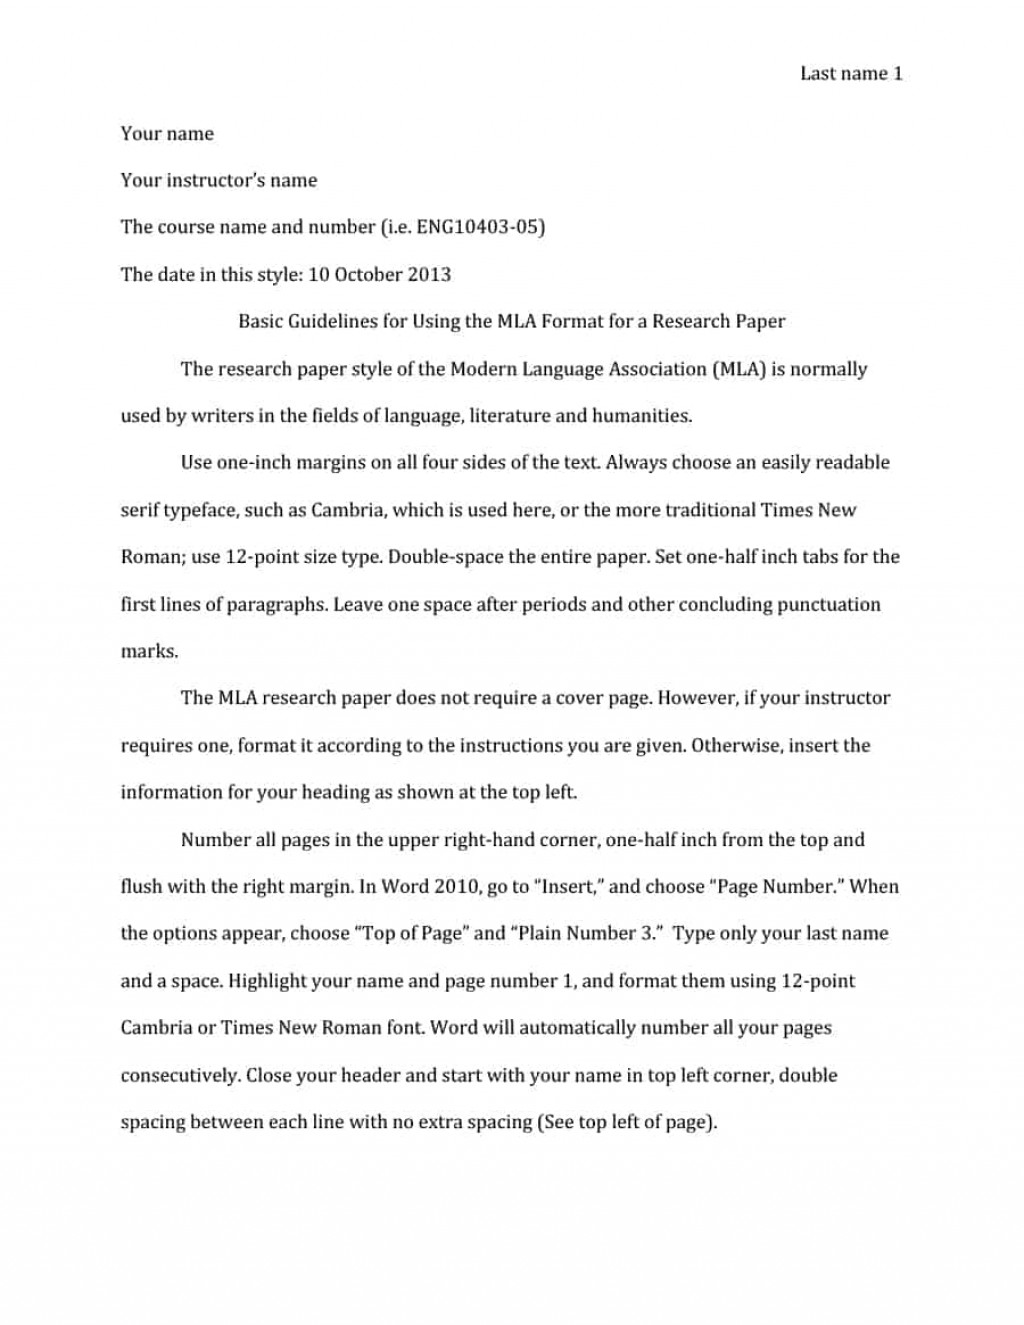 006 Researchs Mla Style Format Template Astounding Research Papers Sample Outline Paper Guide To Writing In Example Large